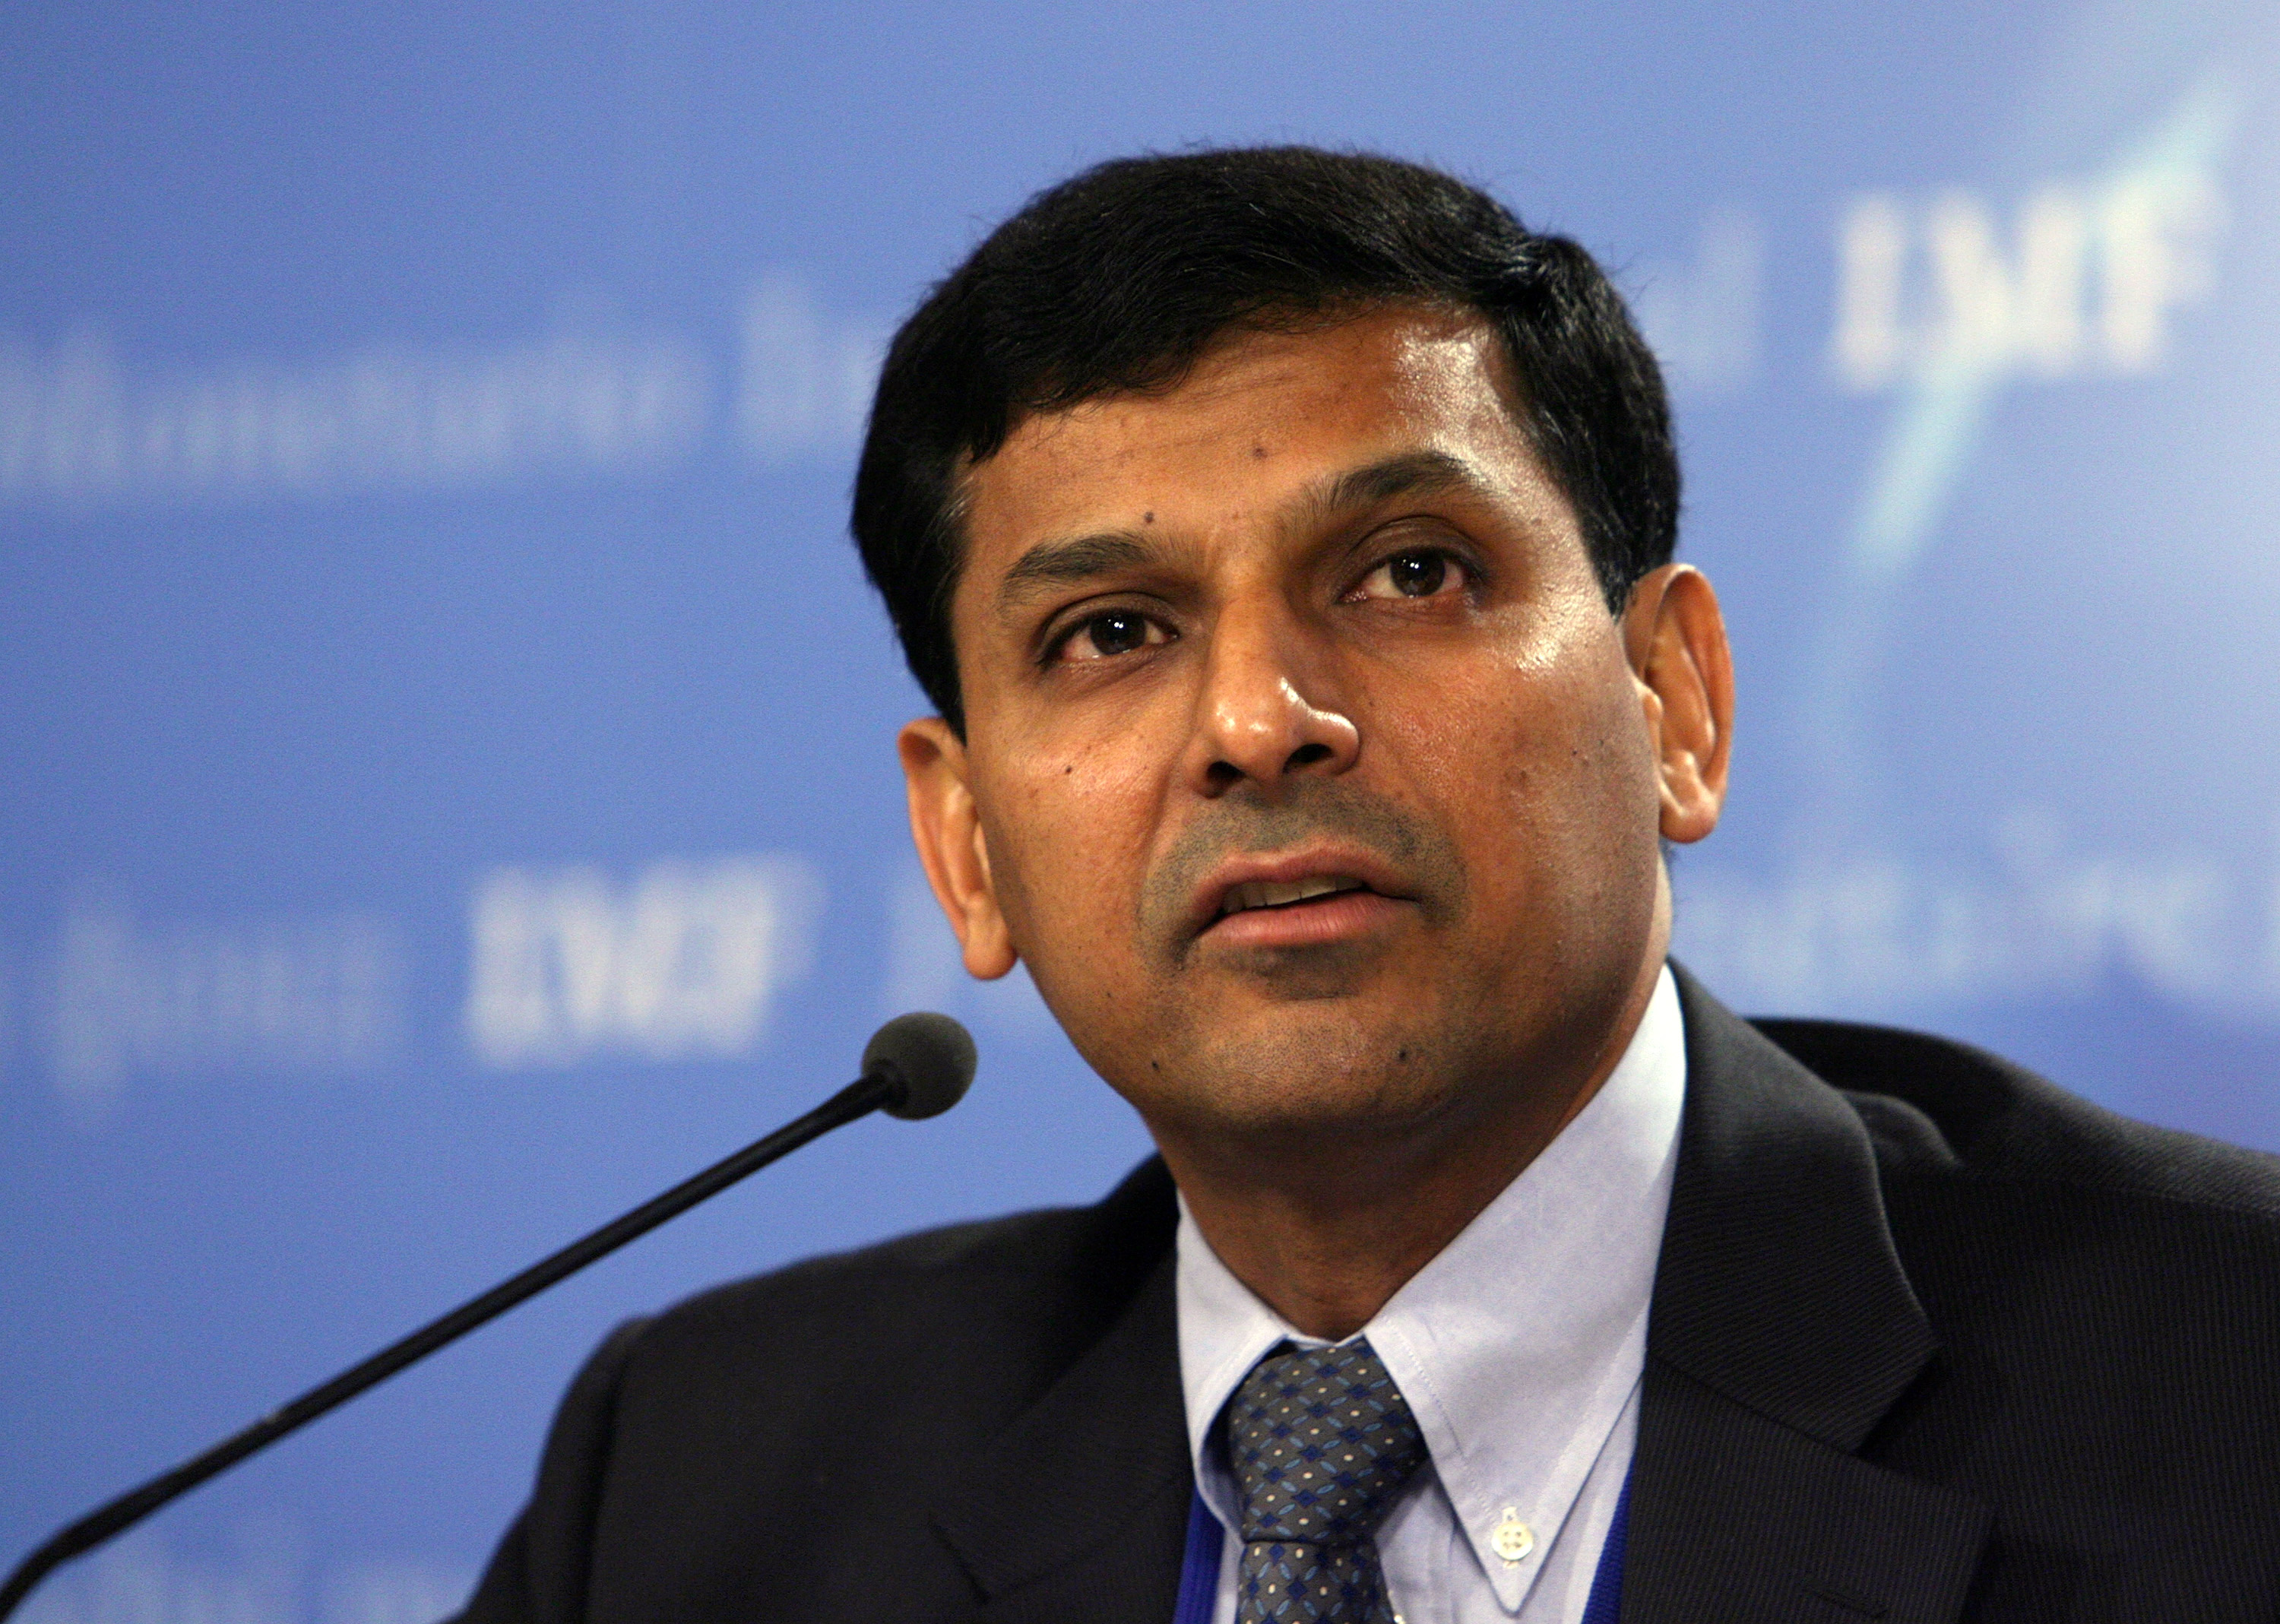 RBI cuts rate again by 25 bps to 7.5%